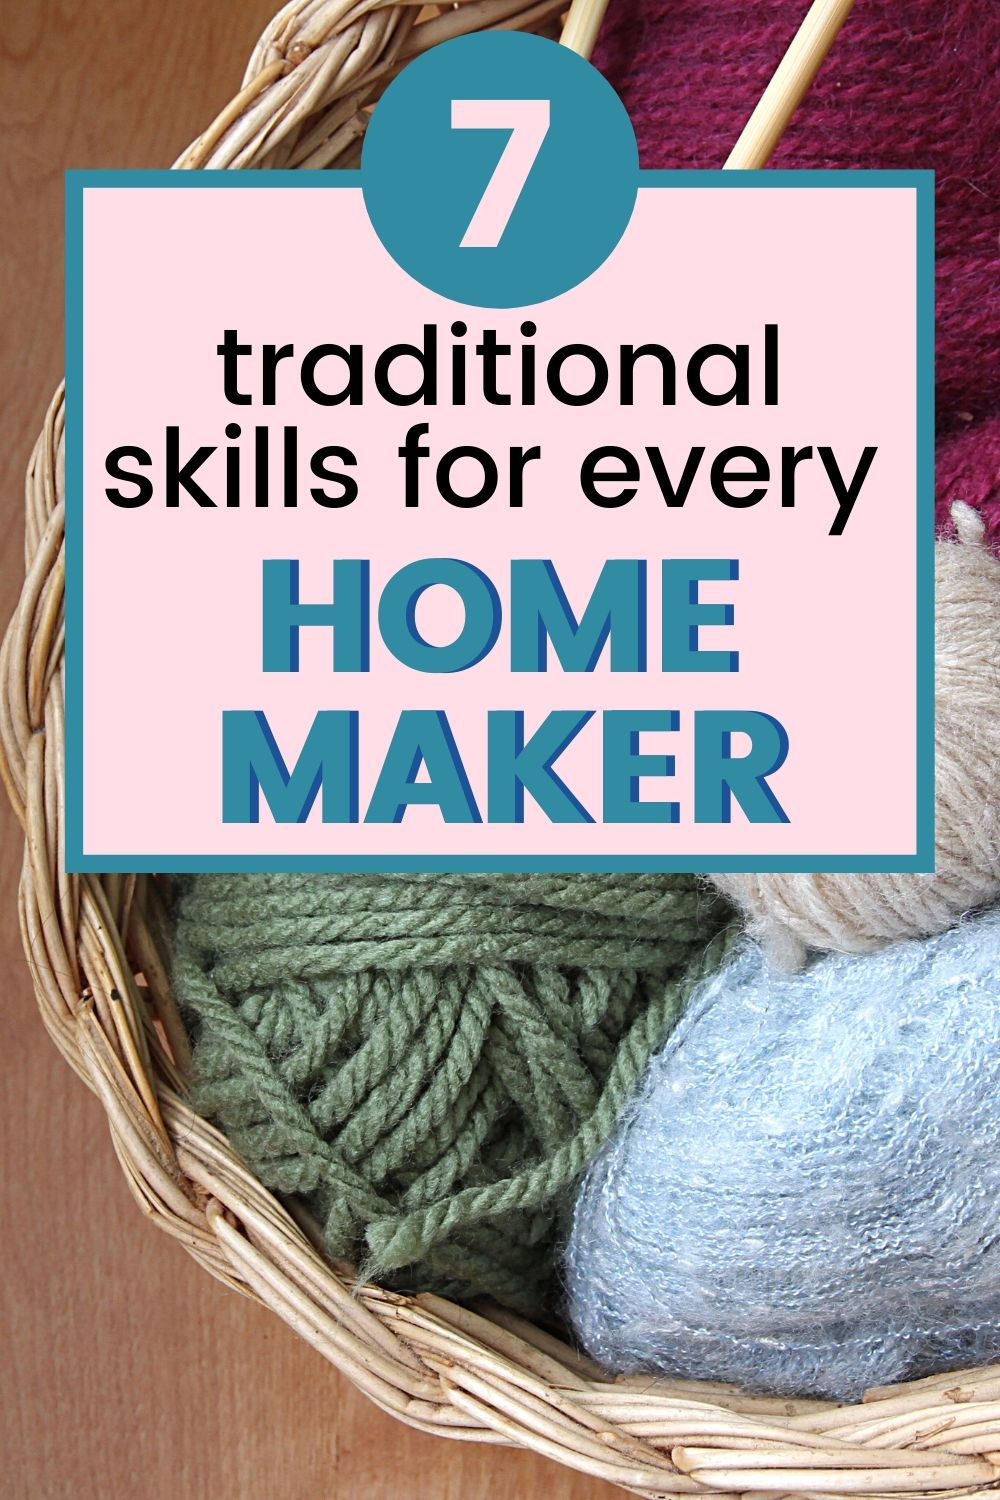 Become a better homemaker by learning these 7 skills!